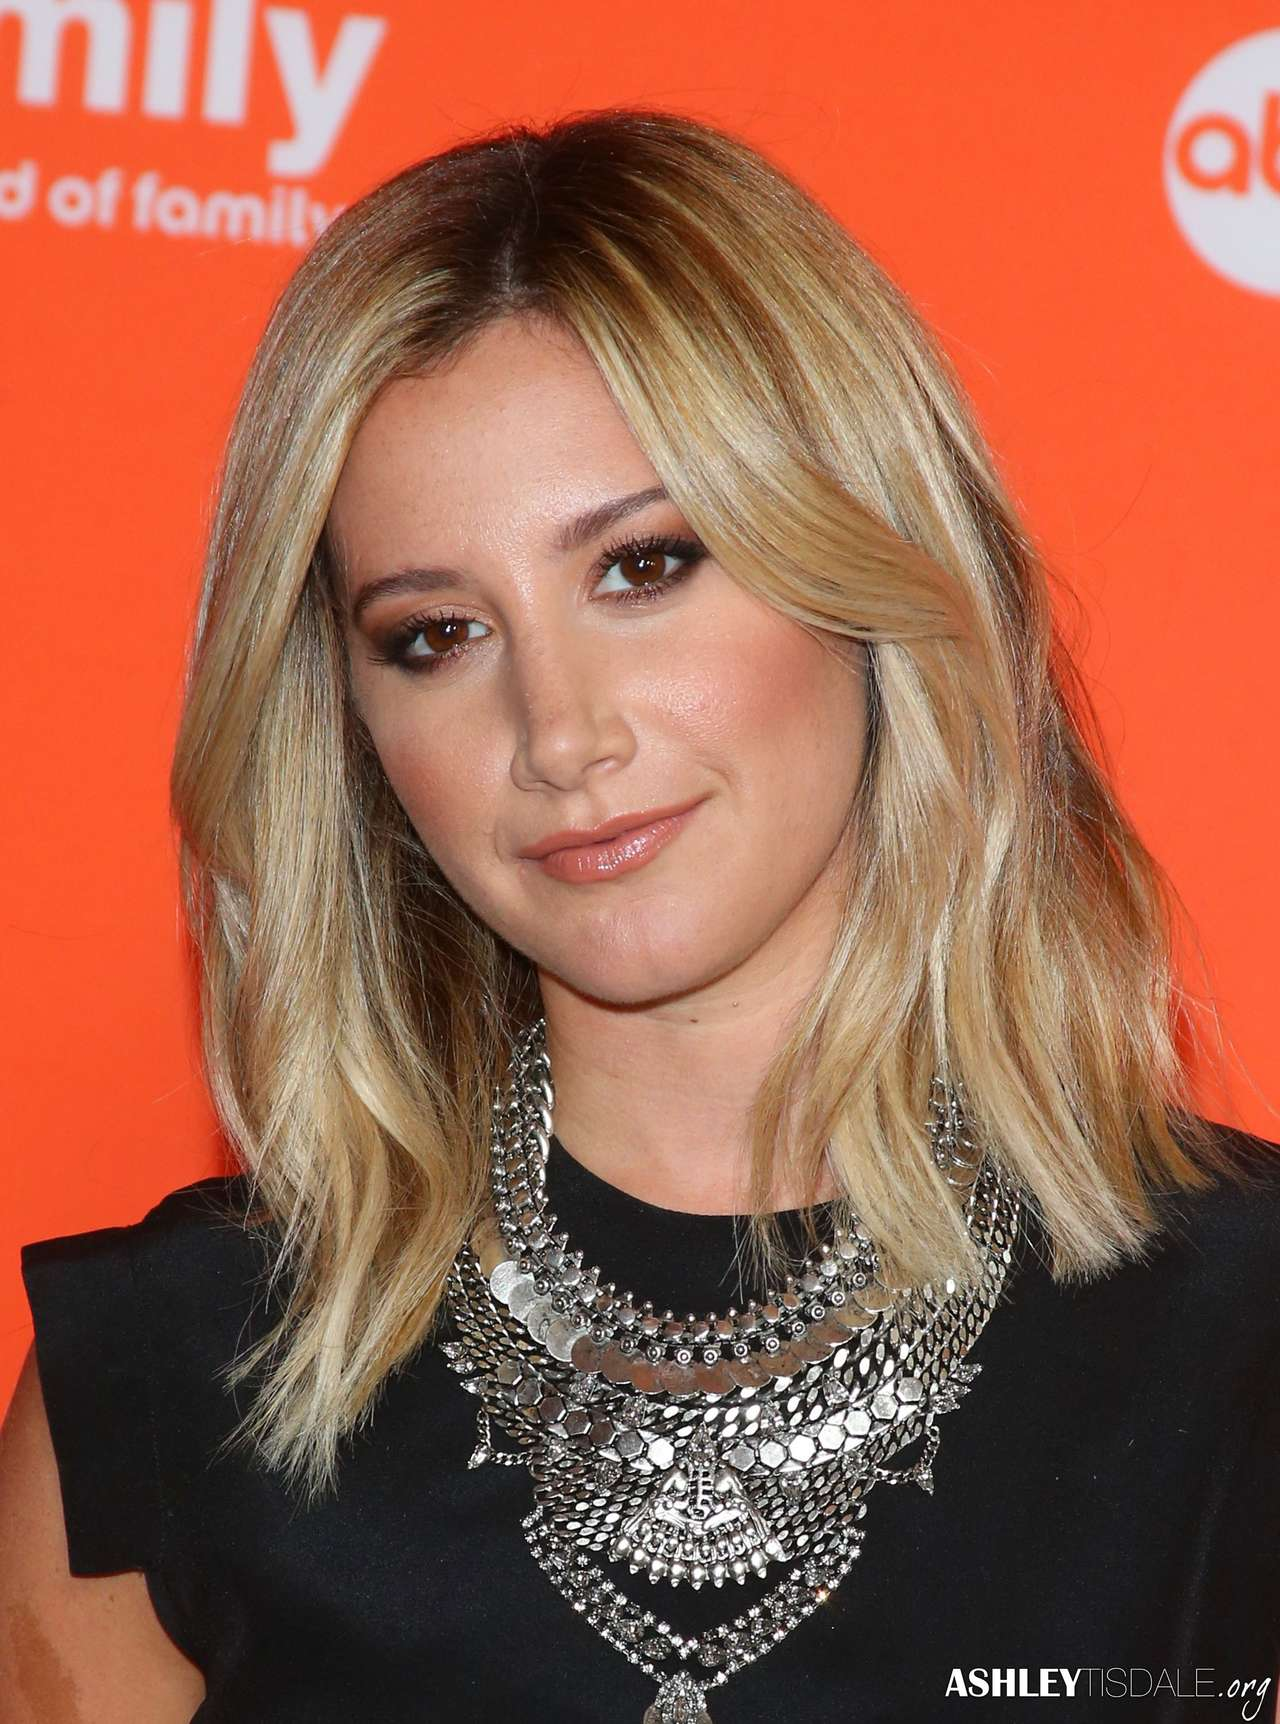 Ashley Tisdale 2014 : Ashley Tisdale at 2014 Disney ABC TCA Summer Press Tour in Beverly Hills -06